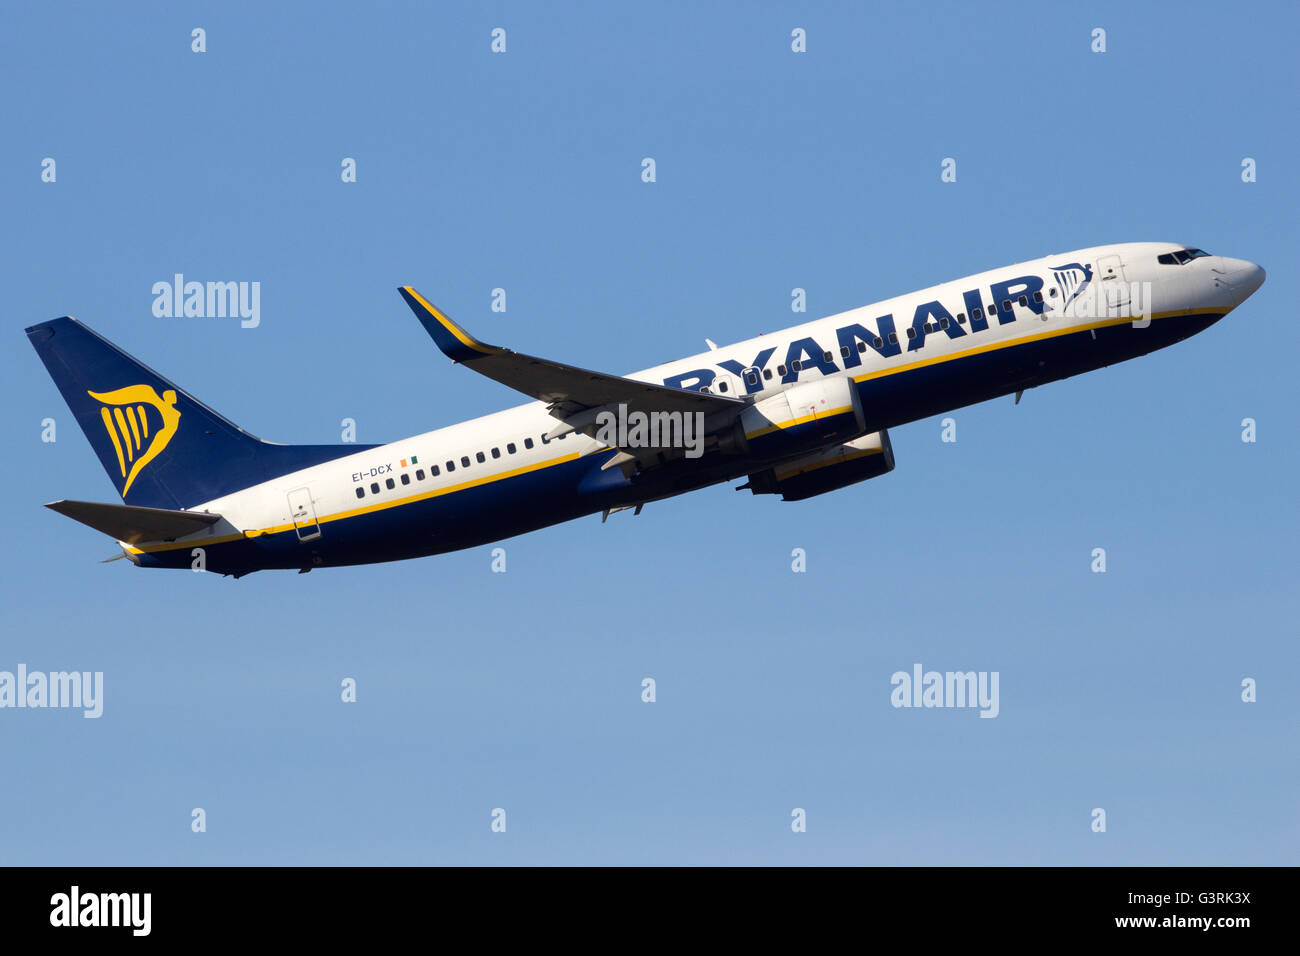 Ryanair Boeing 737 take-off from Schiphol-airport - Stock Image